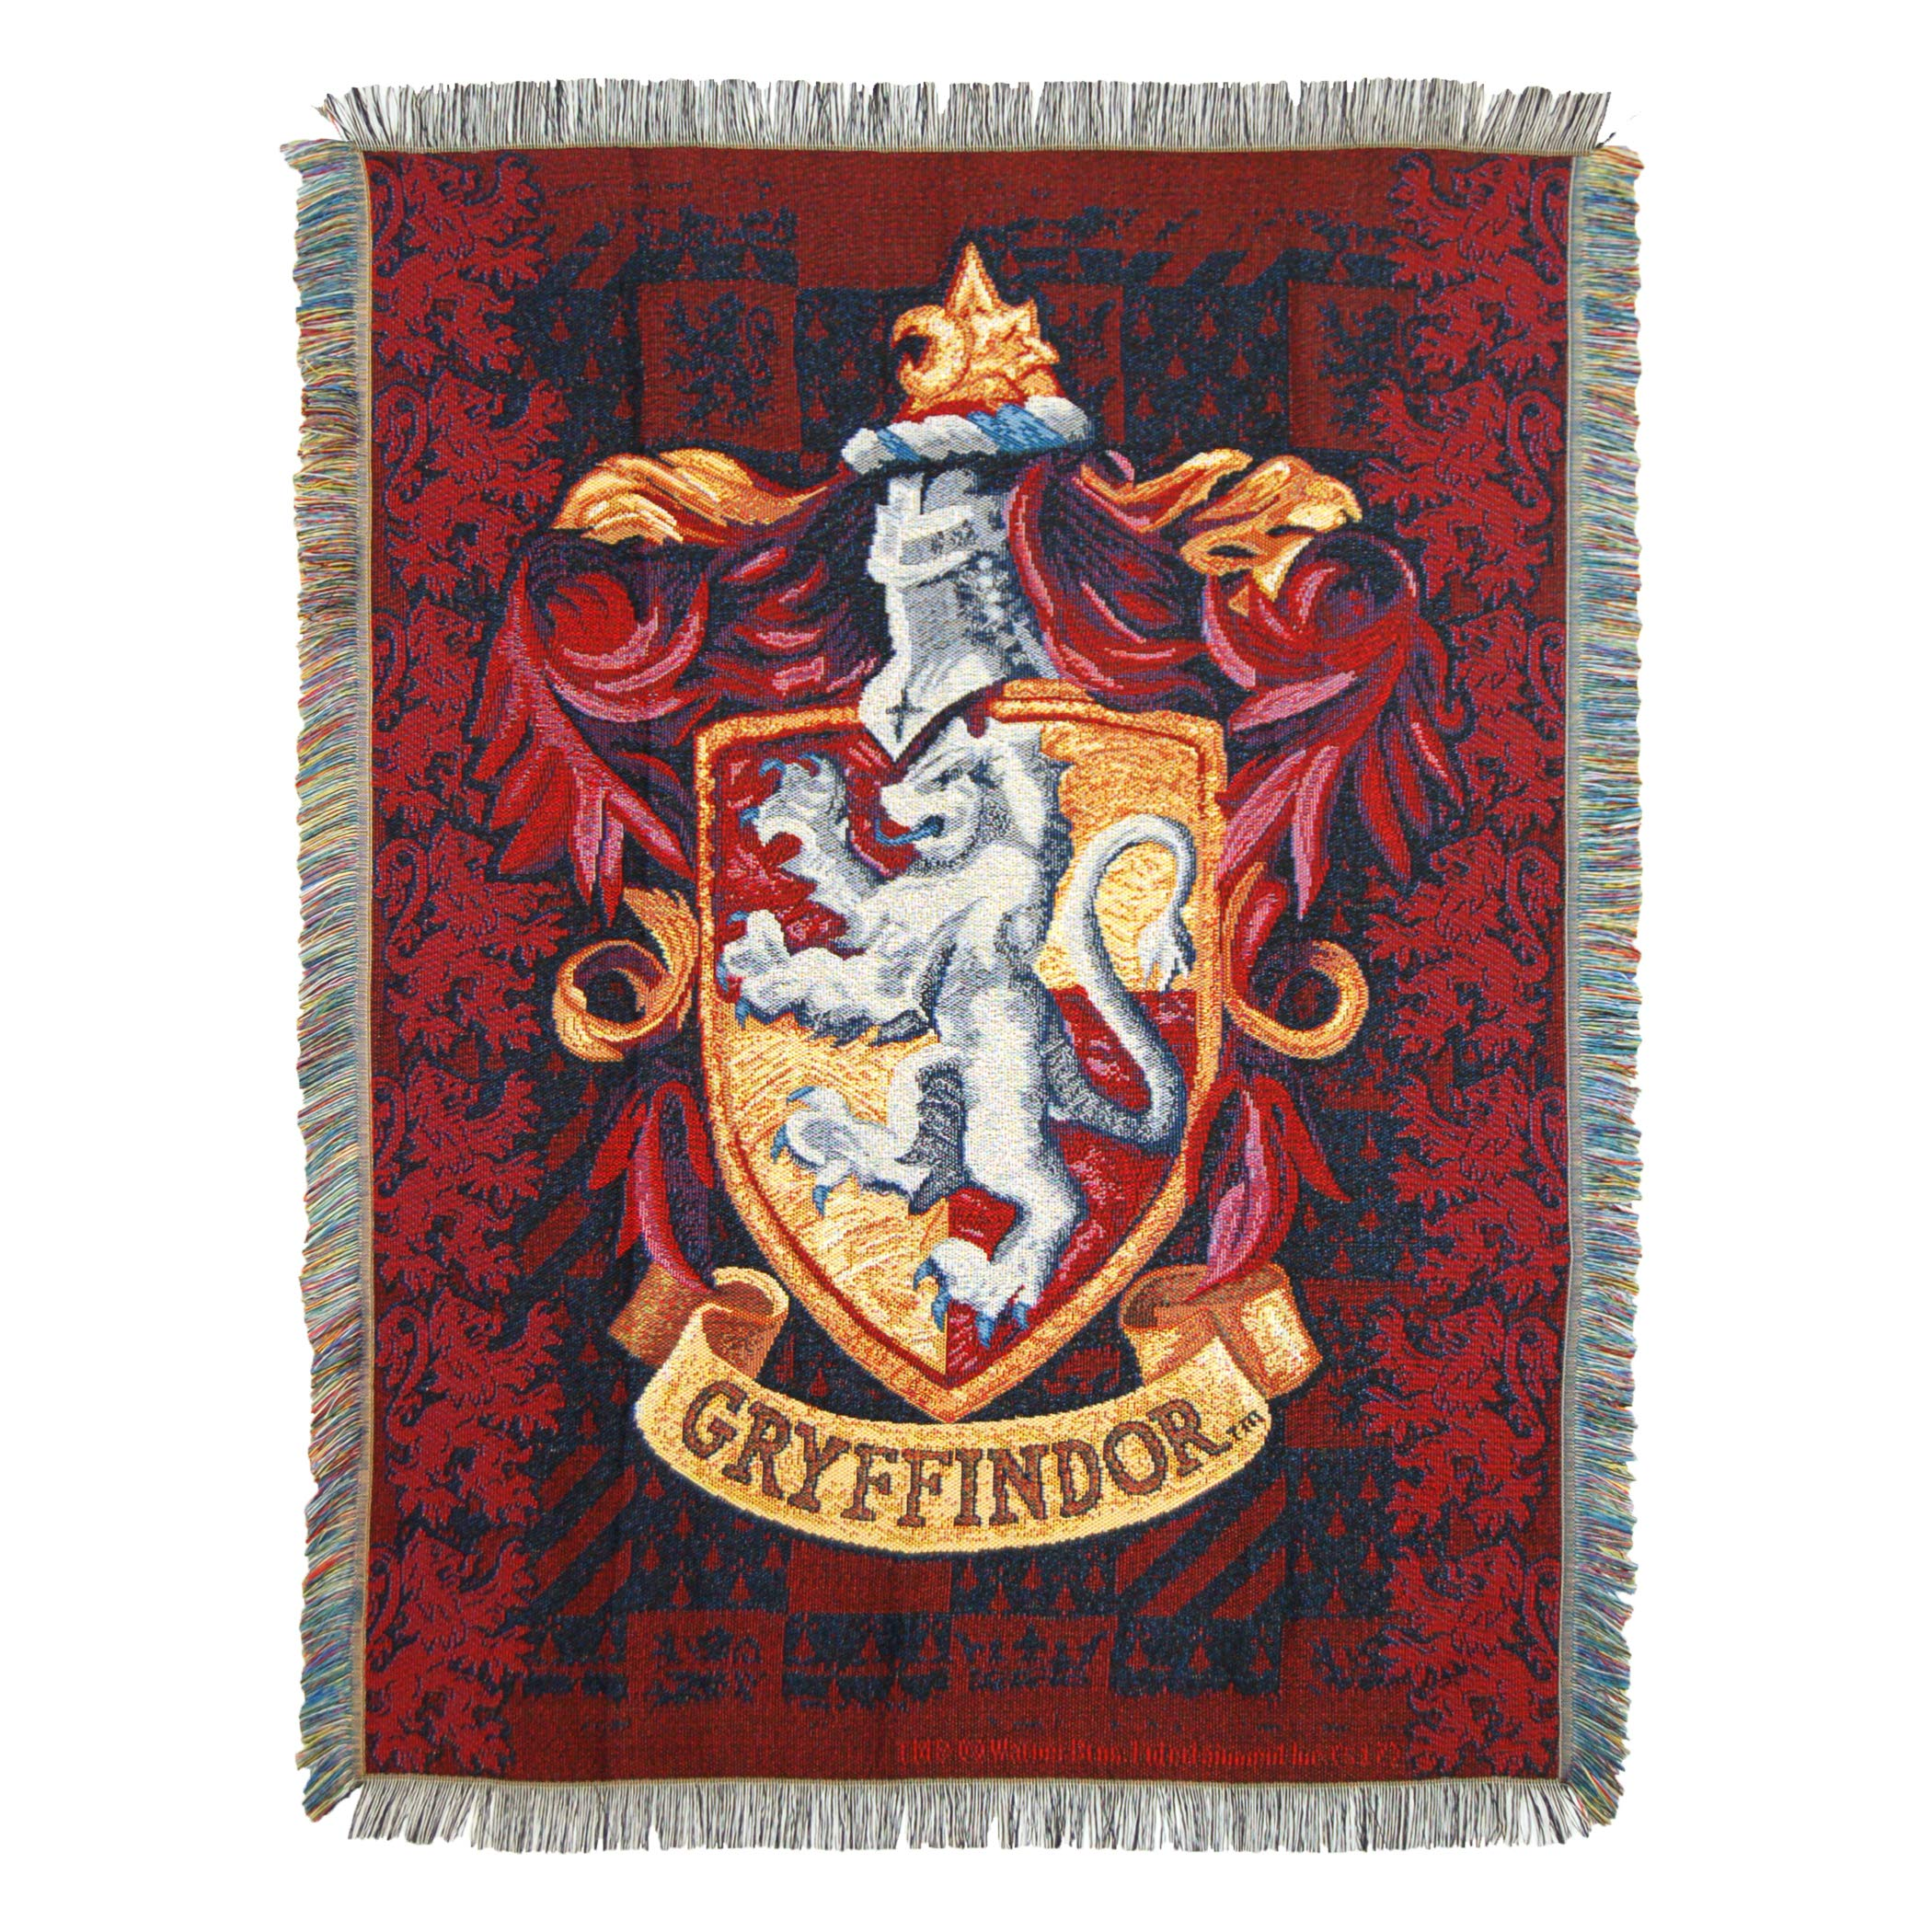 Harry Potter, ''Gryffindor Shield'' Woven Tapestry Throw Blanket, 48'' x 60'', Multi Color by Harry Potter